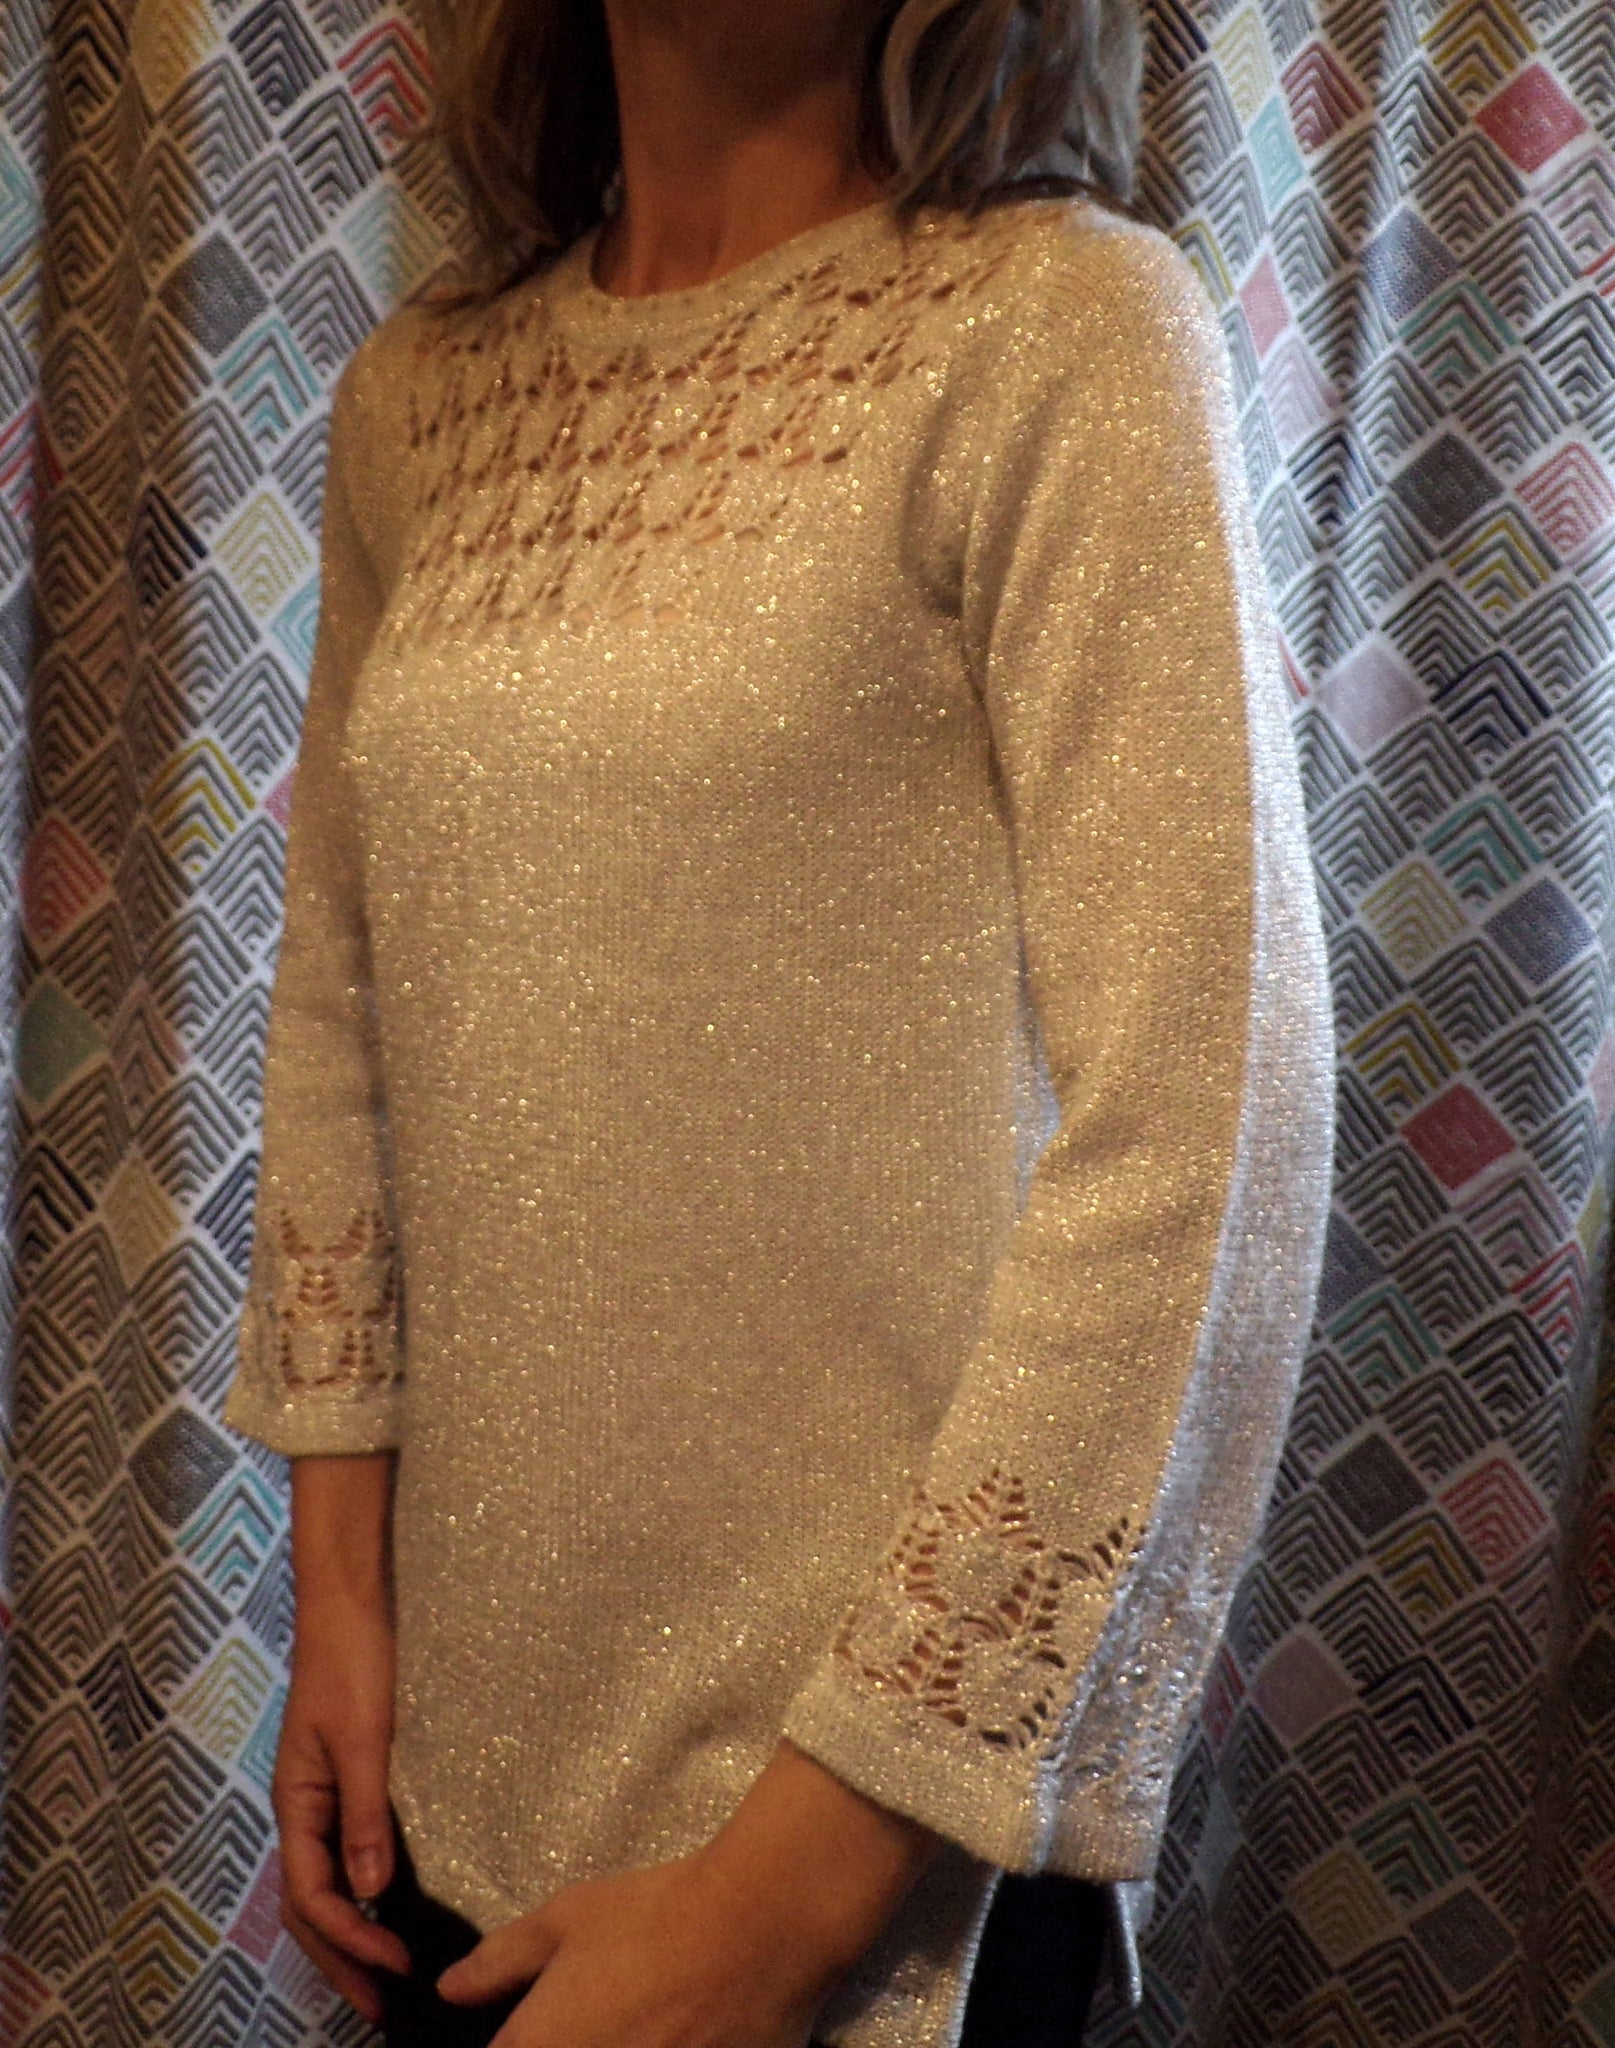 SILVER TWINKLE tunic SWEATER party top S M (G10)